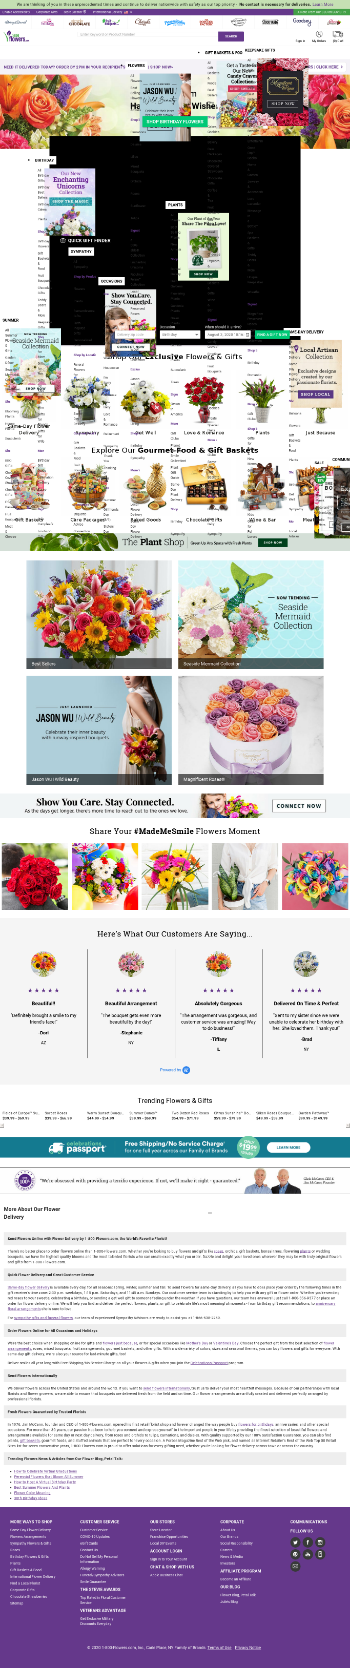 1-800-FLOWERS.COM, Inc. Website Screenshot